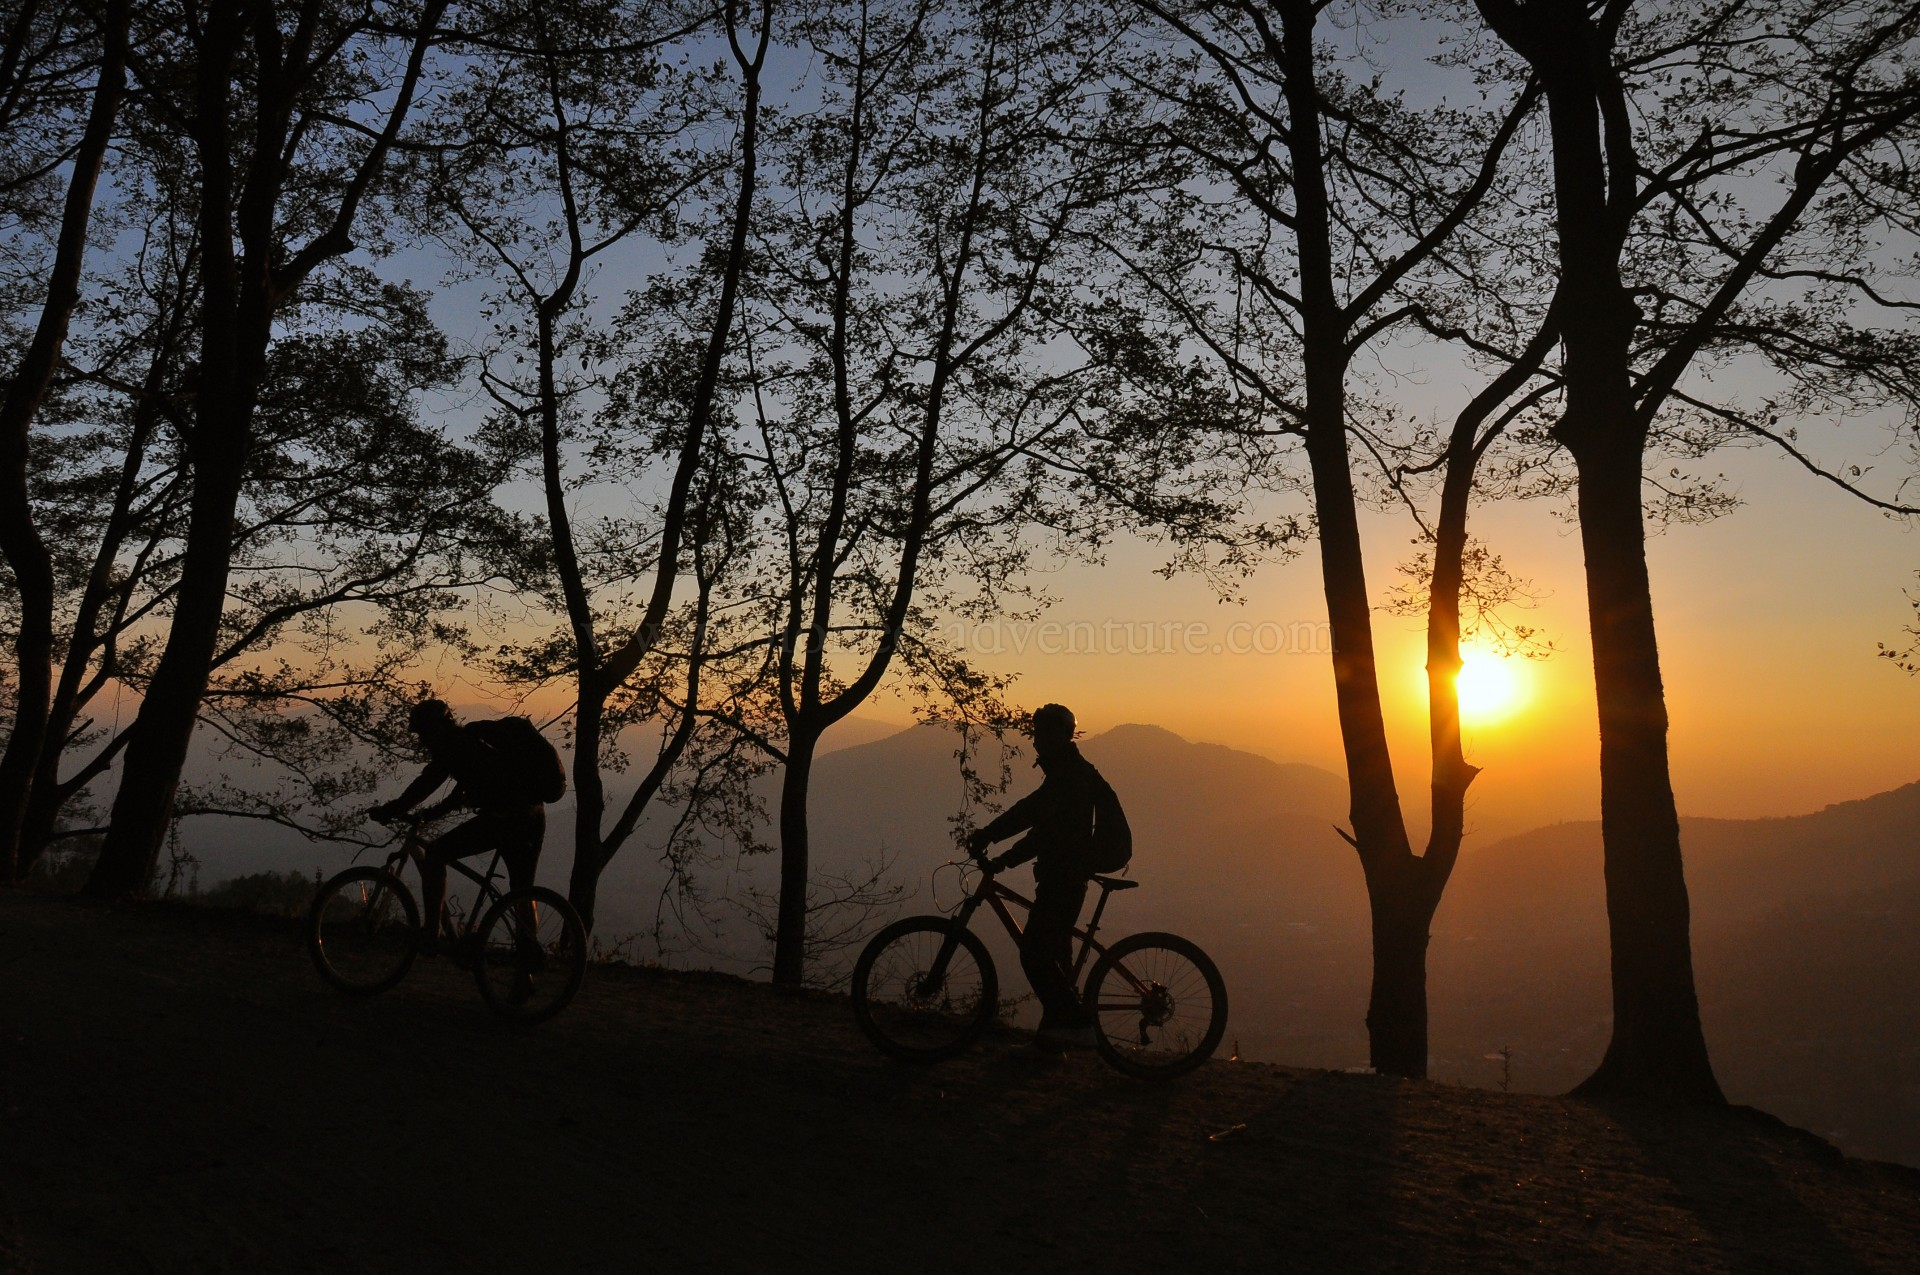 Kathmandu Valley Mountain Biking Tour